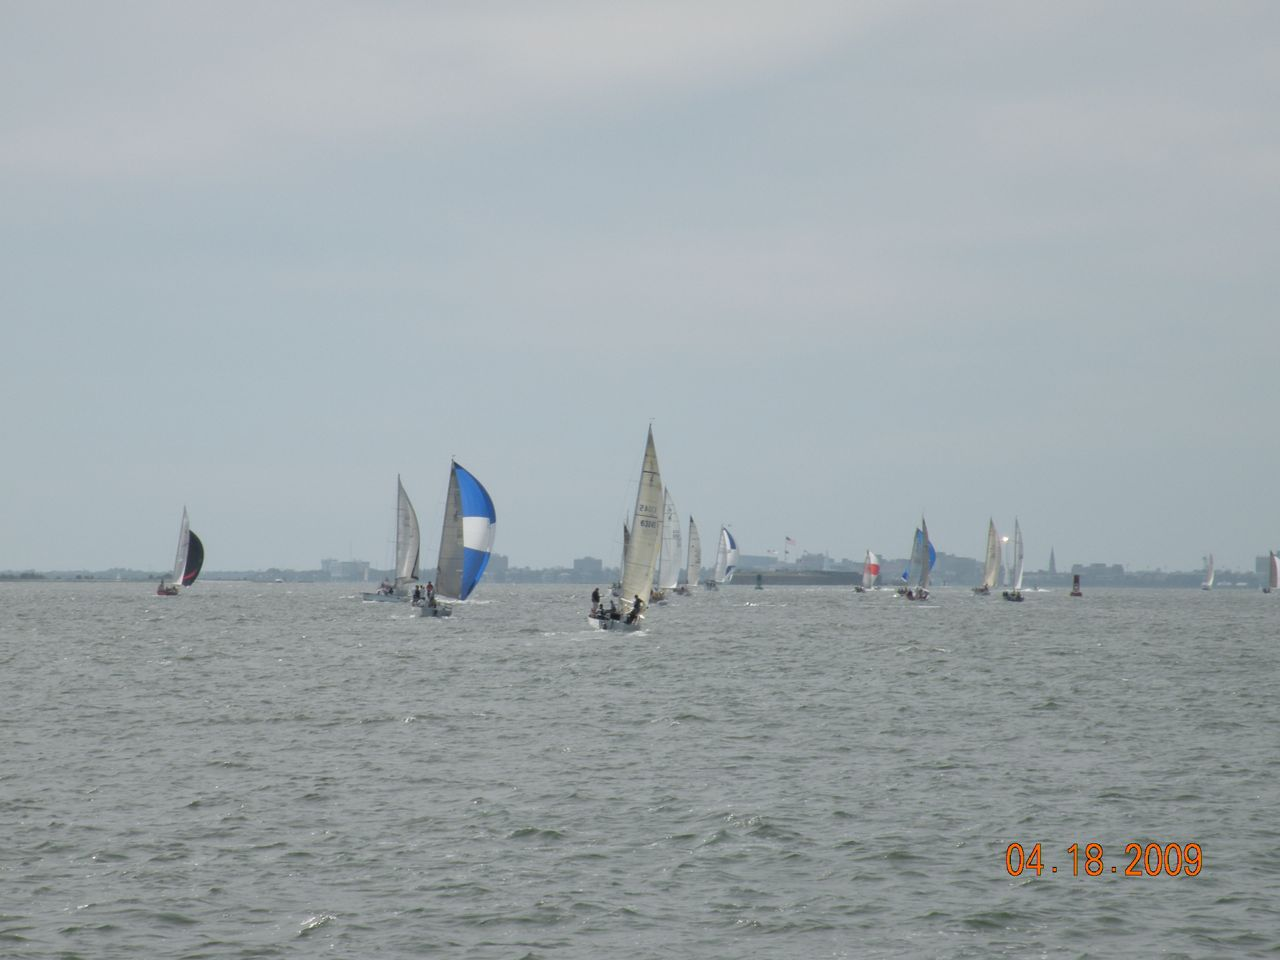 Very Competitive racing at Charleston. - (c) Copyright 2009